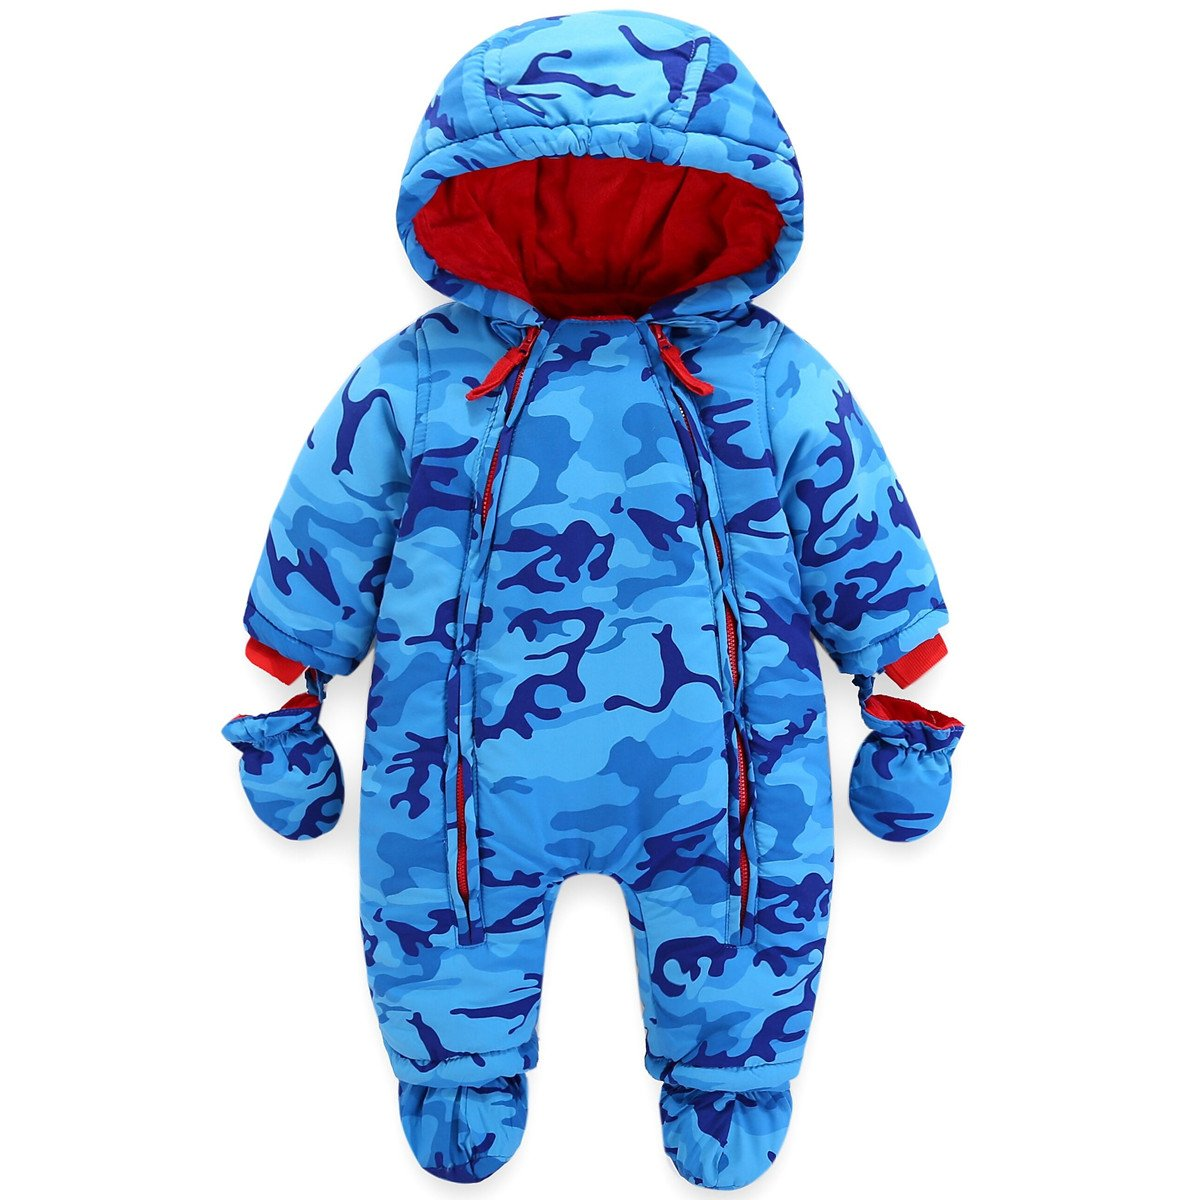 JiAmy Baby Winter Hooded Romper Snowsuit with Gloves Booties Outfits 3-24 Months Ltd